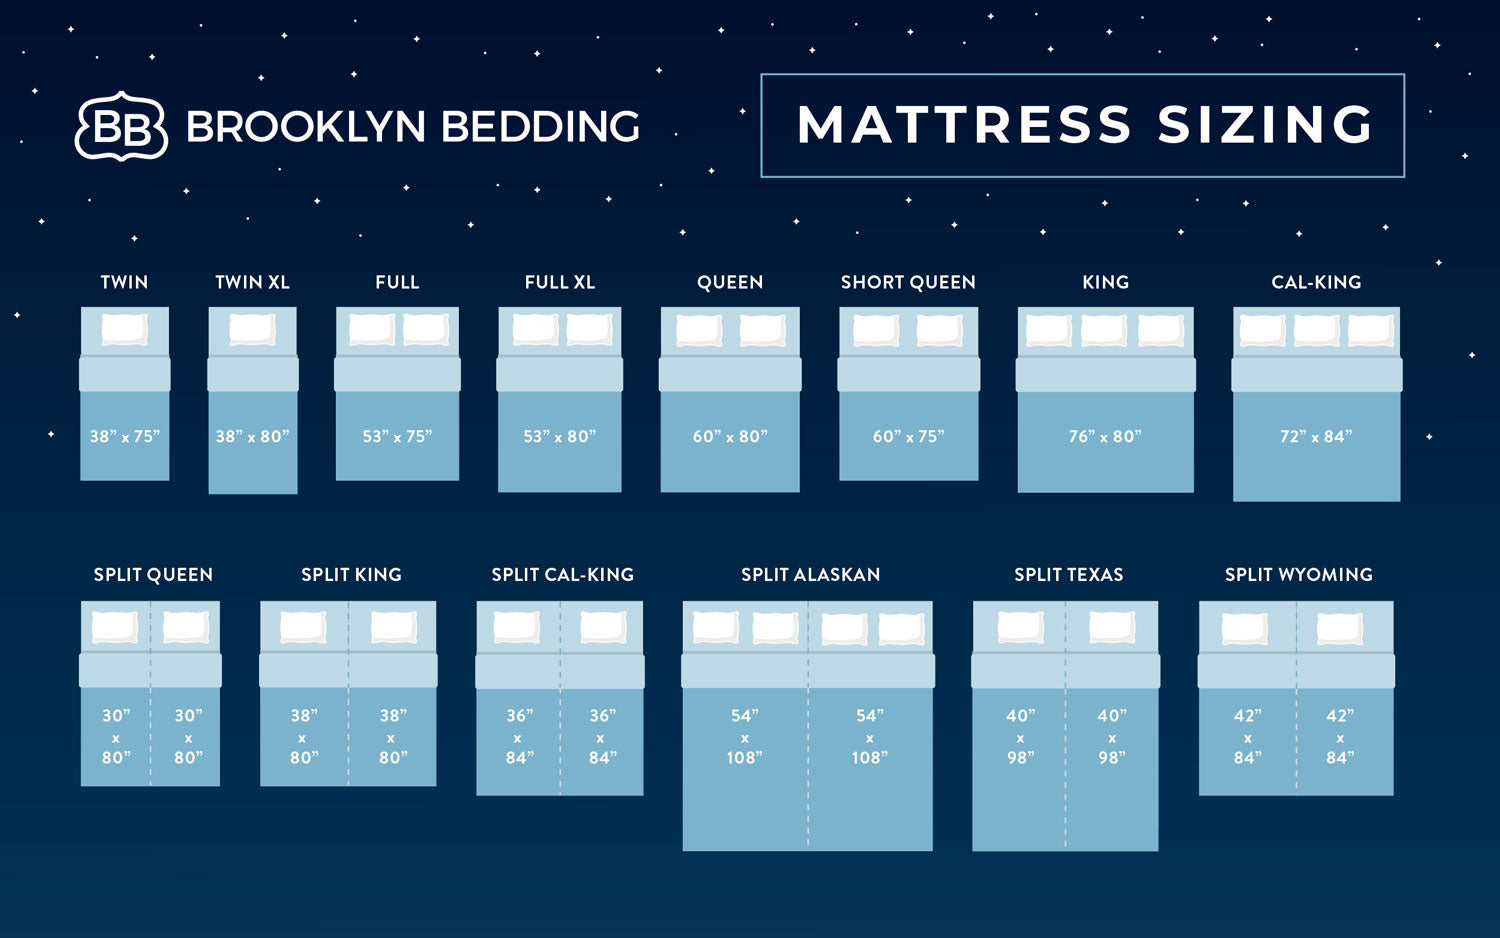 mattress sizing infographic